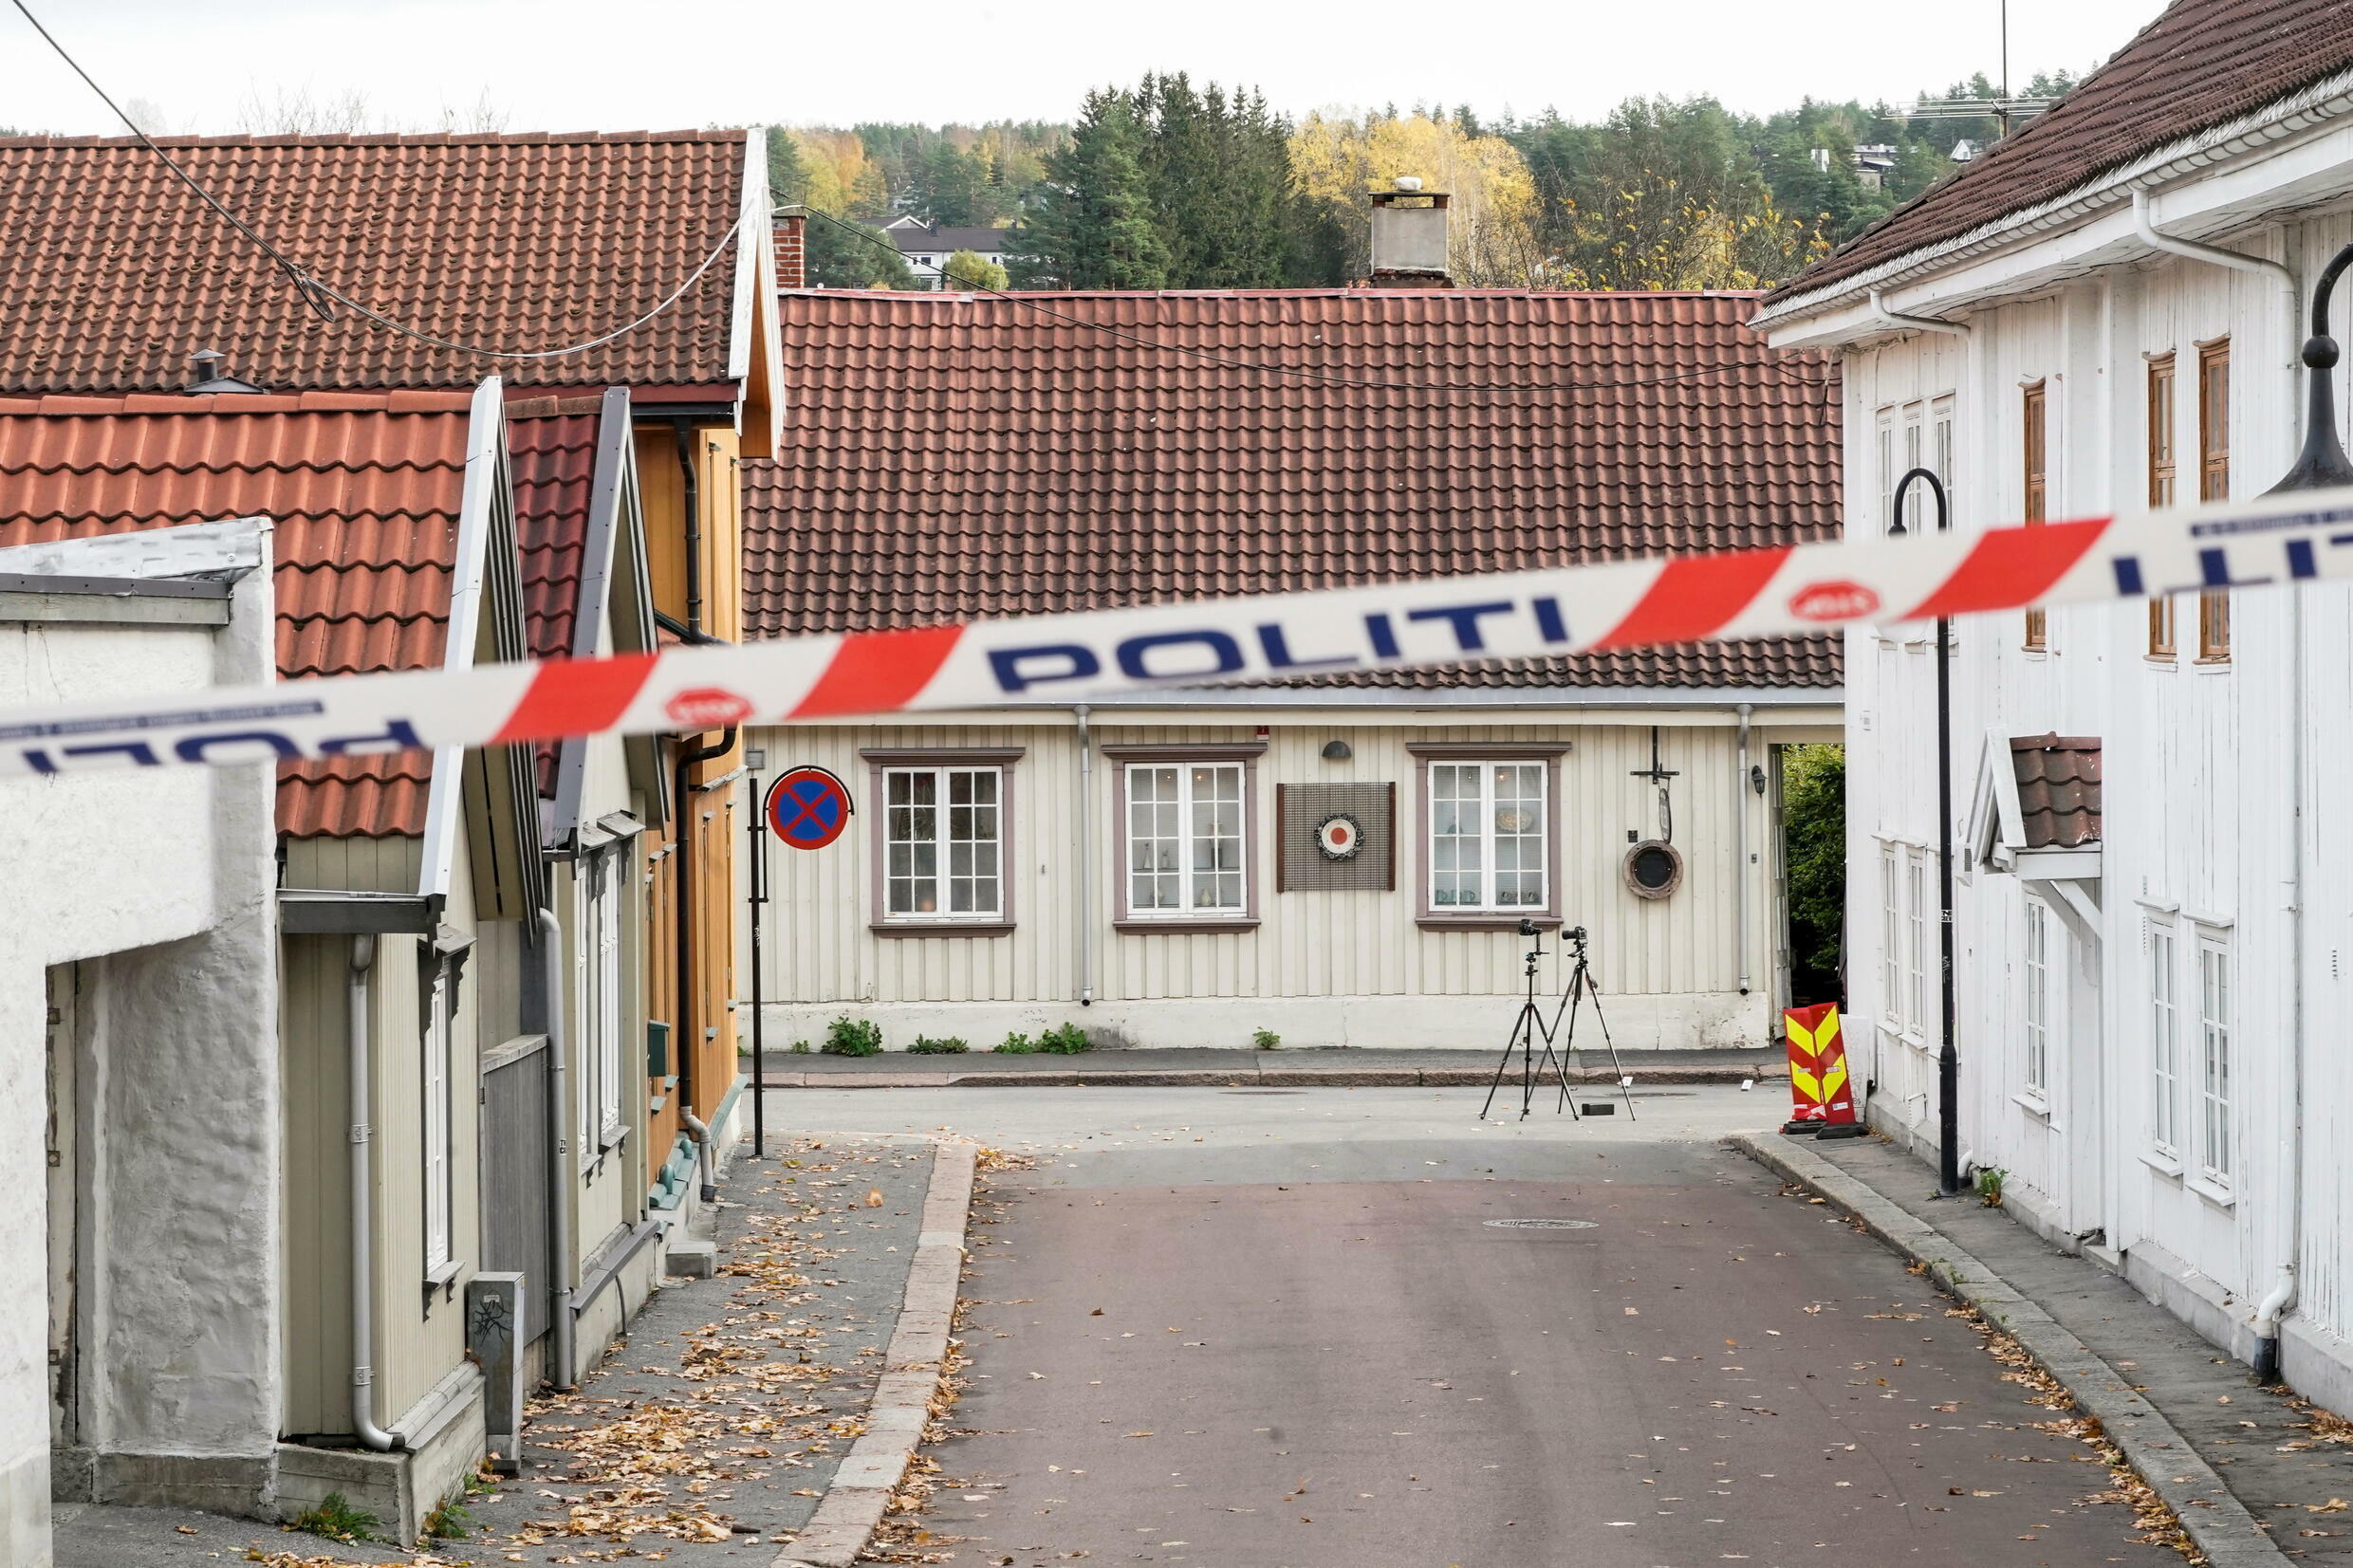 2021-10-15T105927Z_628409978_RC2AAQ950TO7_RTRMADP_3_NORWAY-CRIME